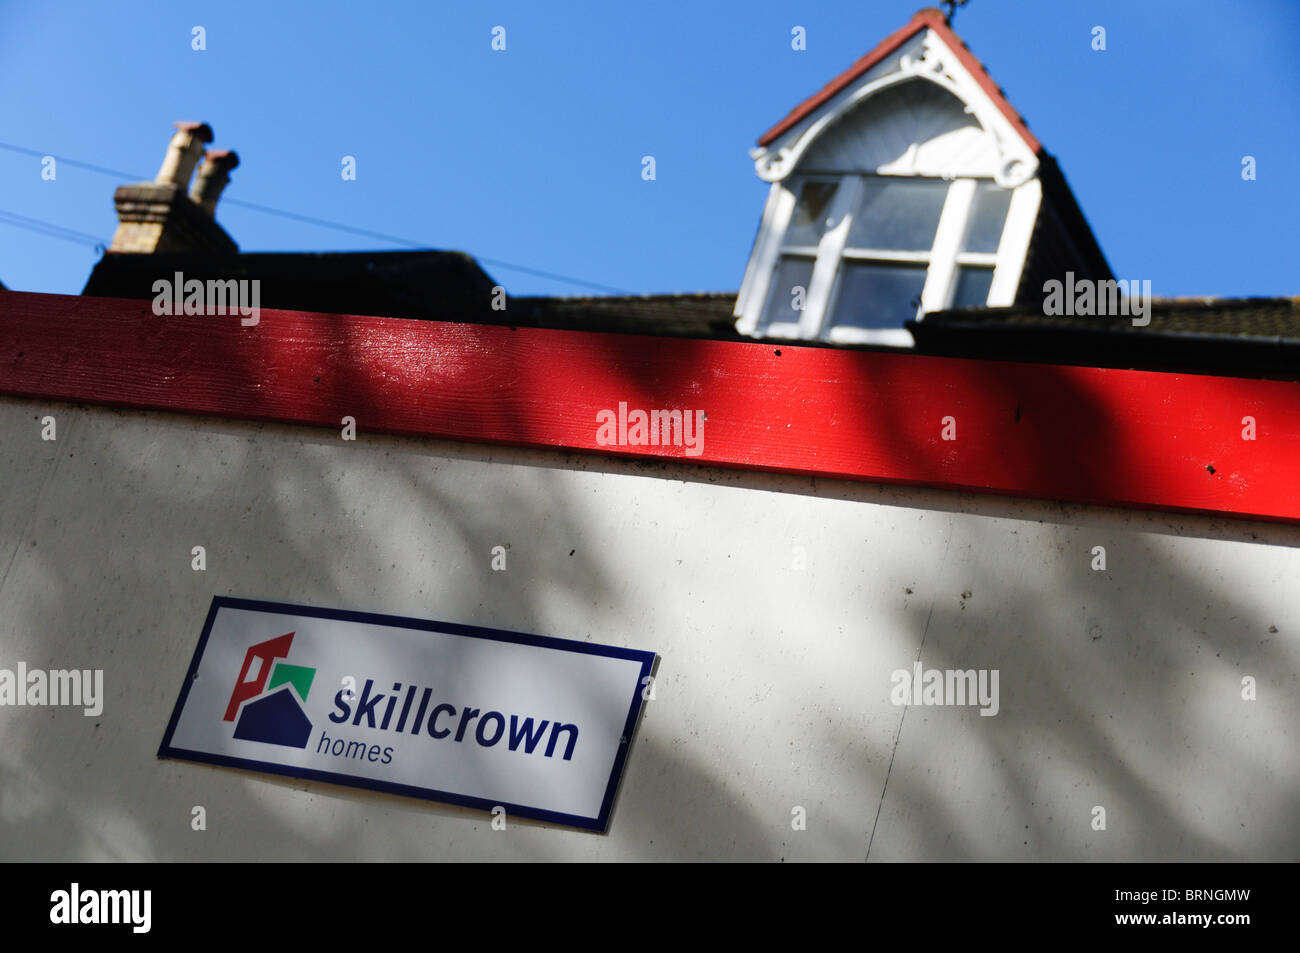 A site hoarding around a house bearing the name and logo of Skillcrown homes. - Stock Image